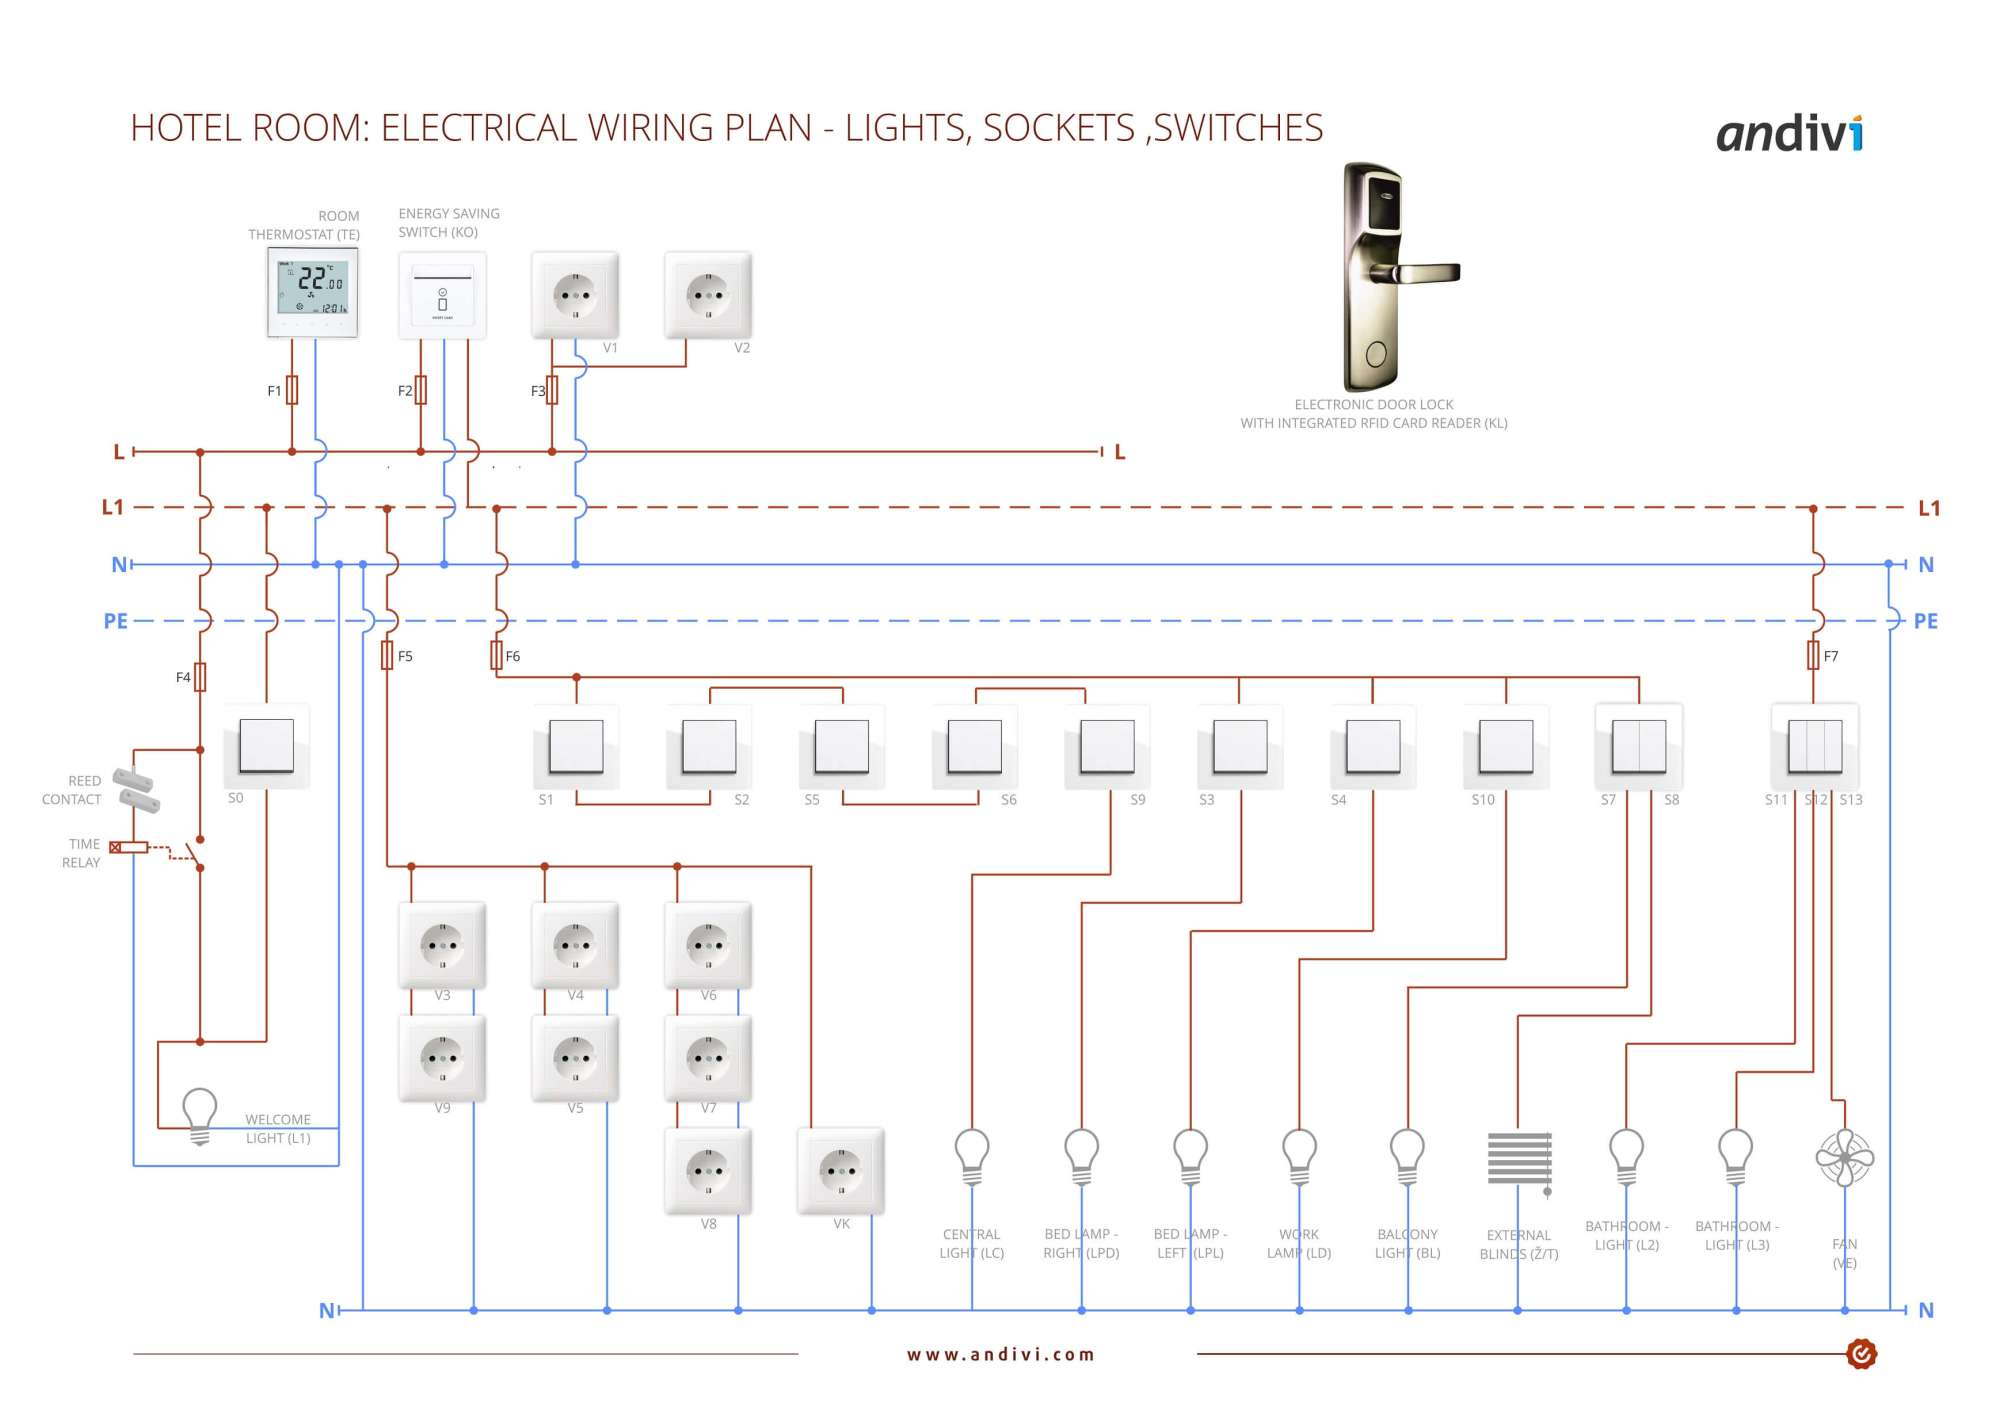 hight resolution of electrical wiring plan hotel room lights sockets switches